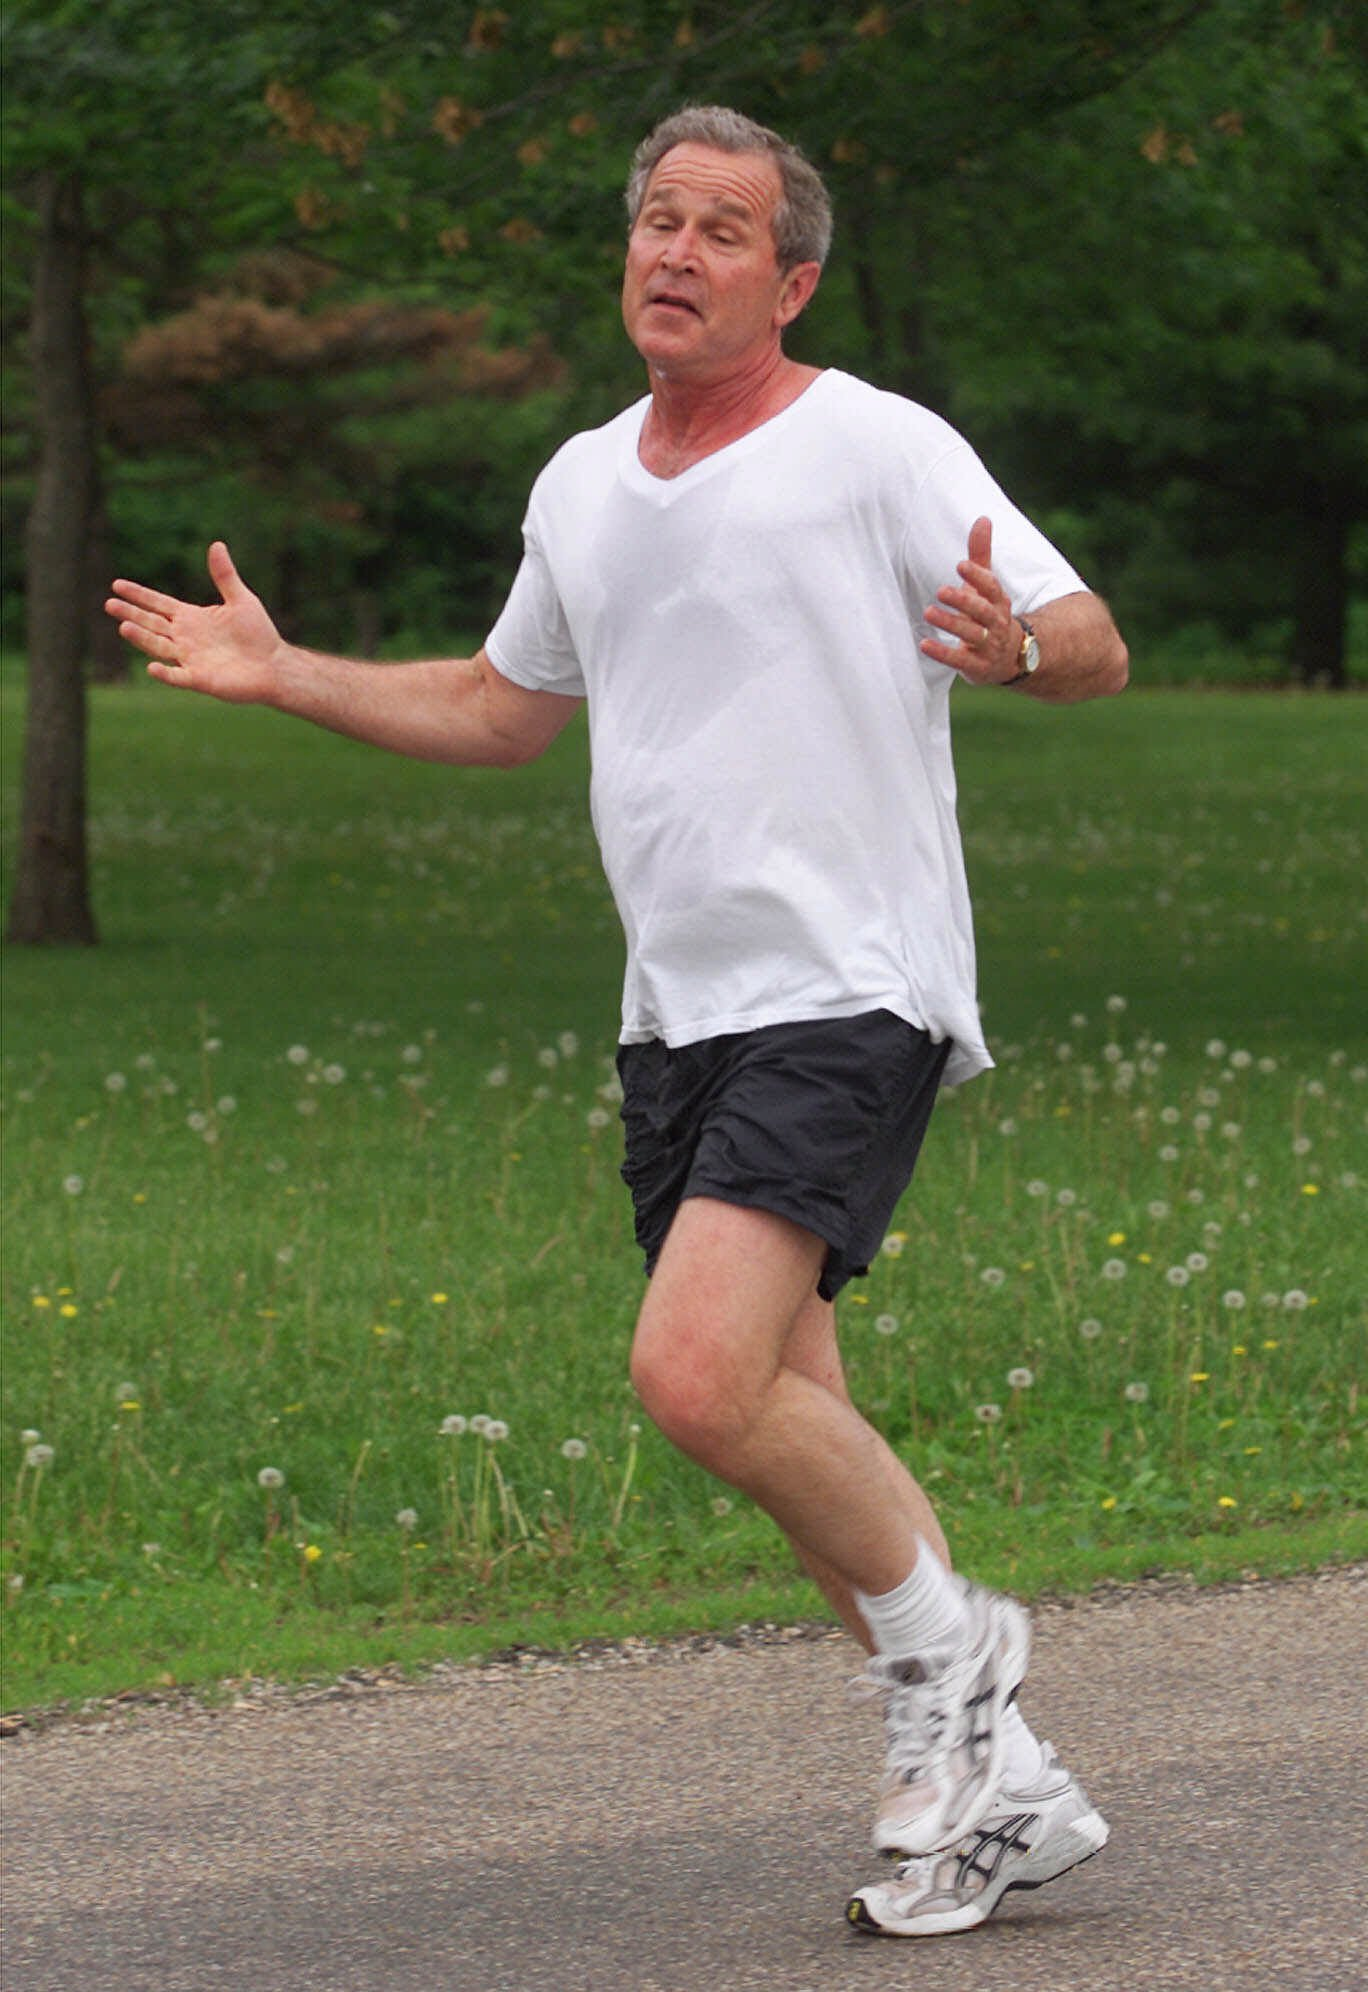 President Bush jogs in Water Works Park in Des Moines, Iowa, in 2001. Photograph by AP Photo/Ron Edmonds.